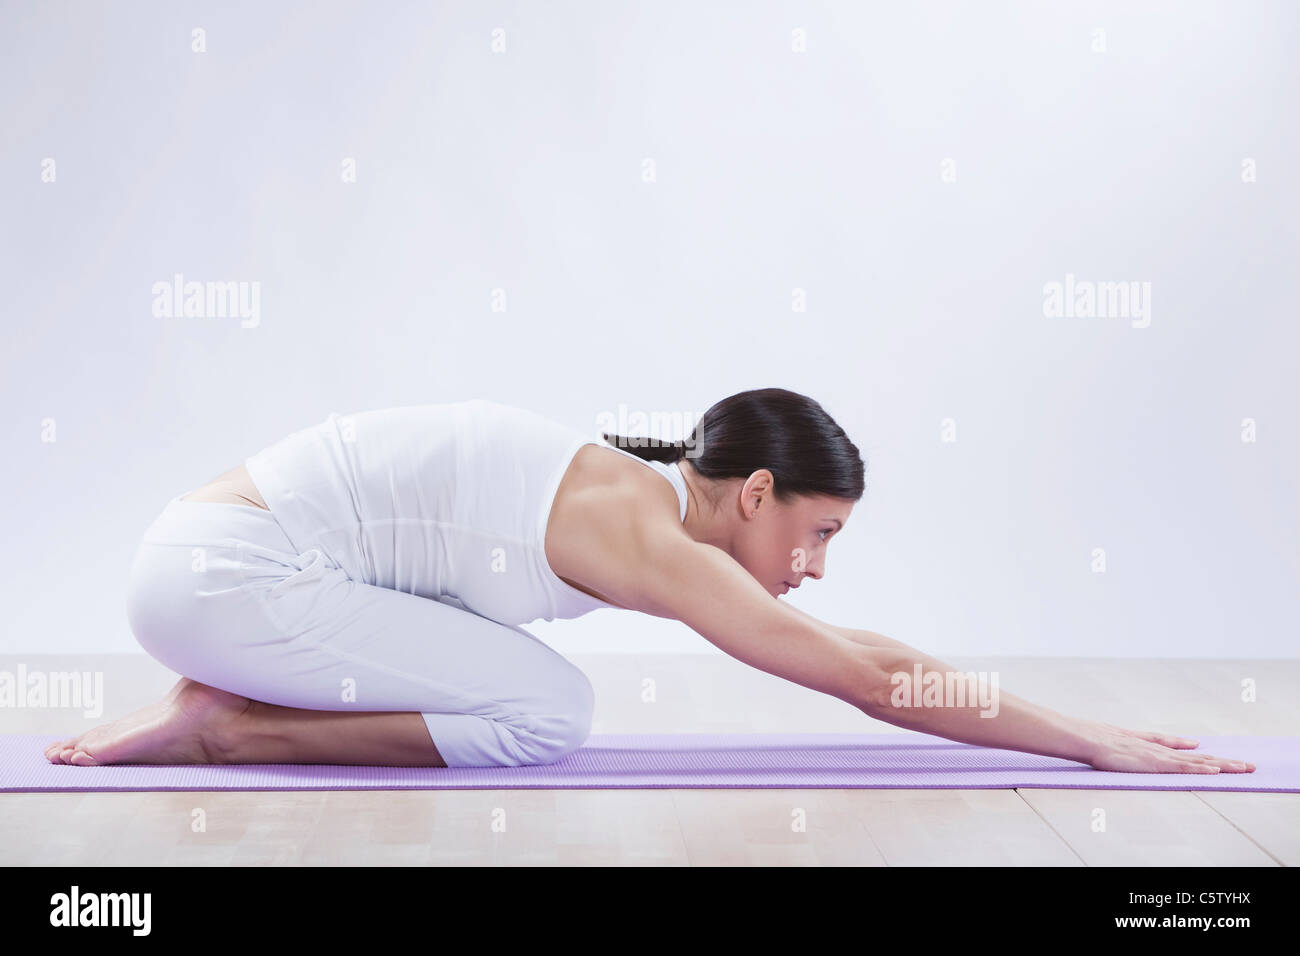 Mid adult woman doing child's pose against white background - Stock Image